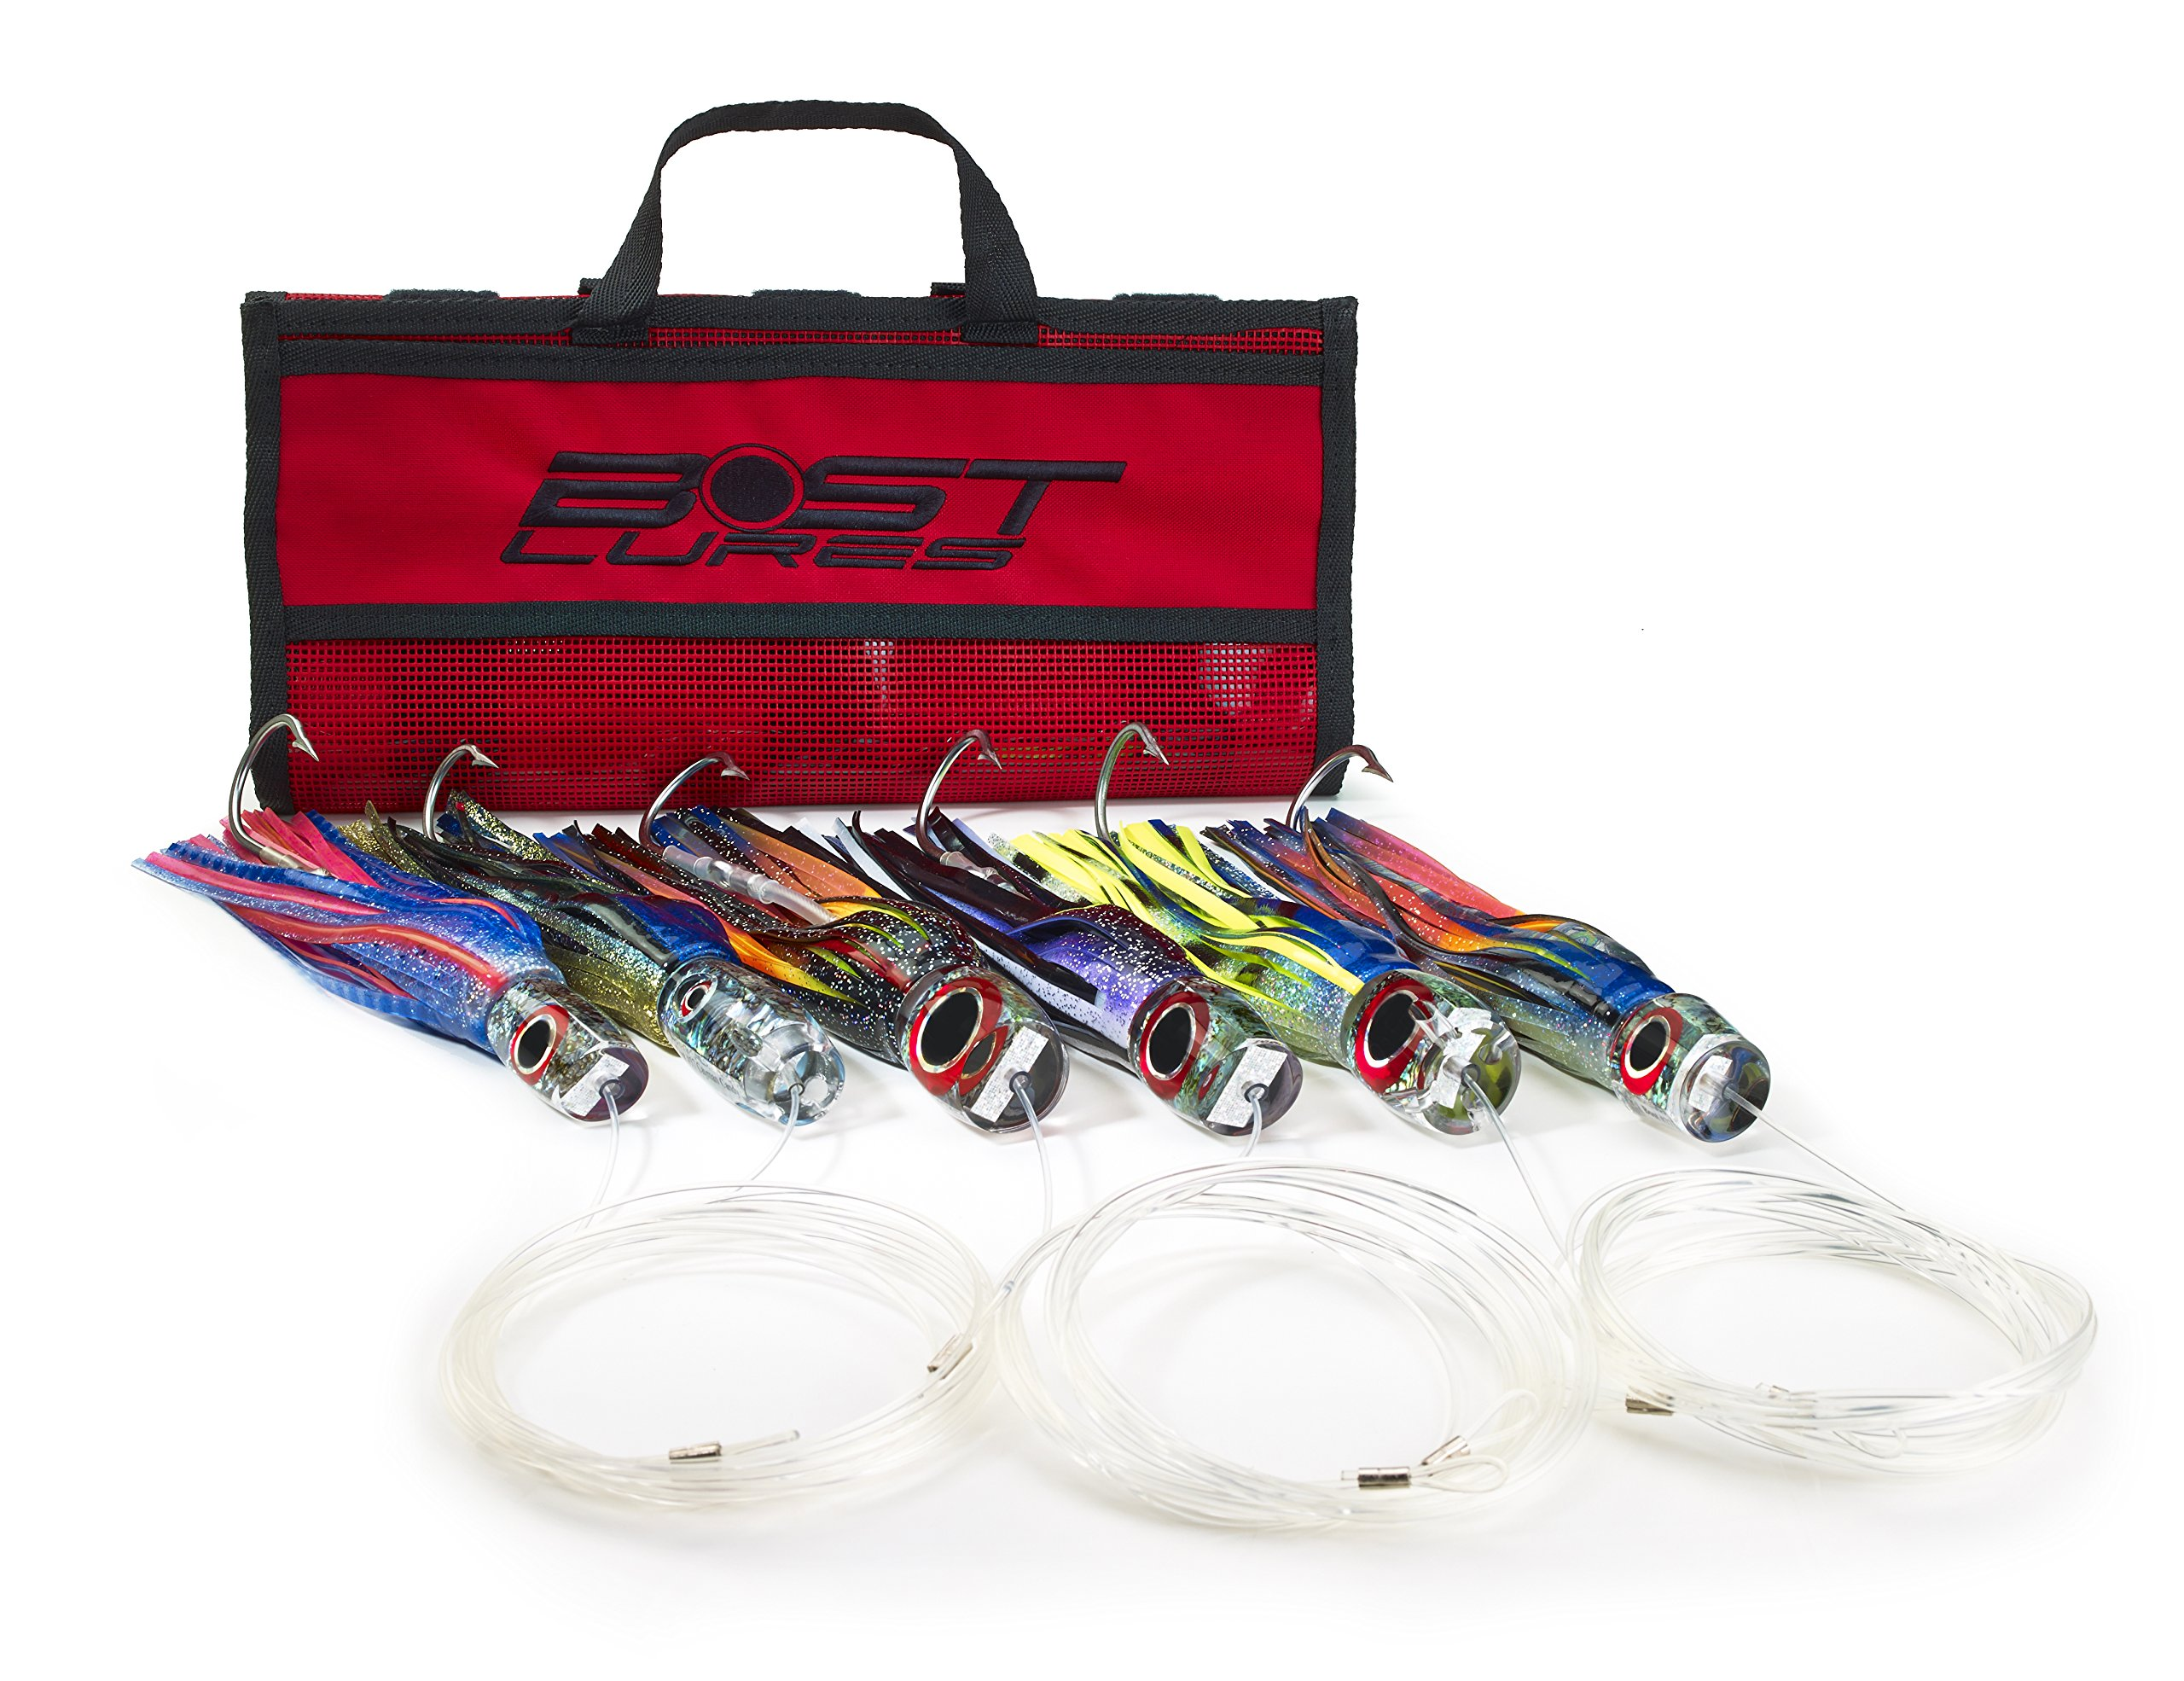 Marlin Lure Trolling Pack by Bost - Rigged w/Double Hooks by Bost Lures